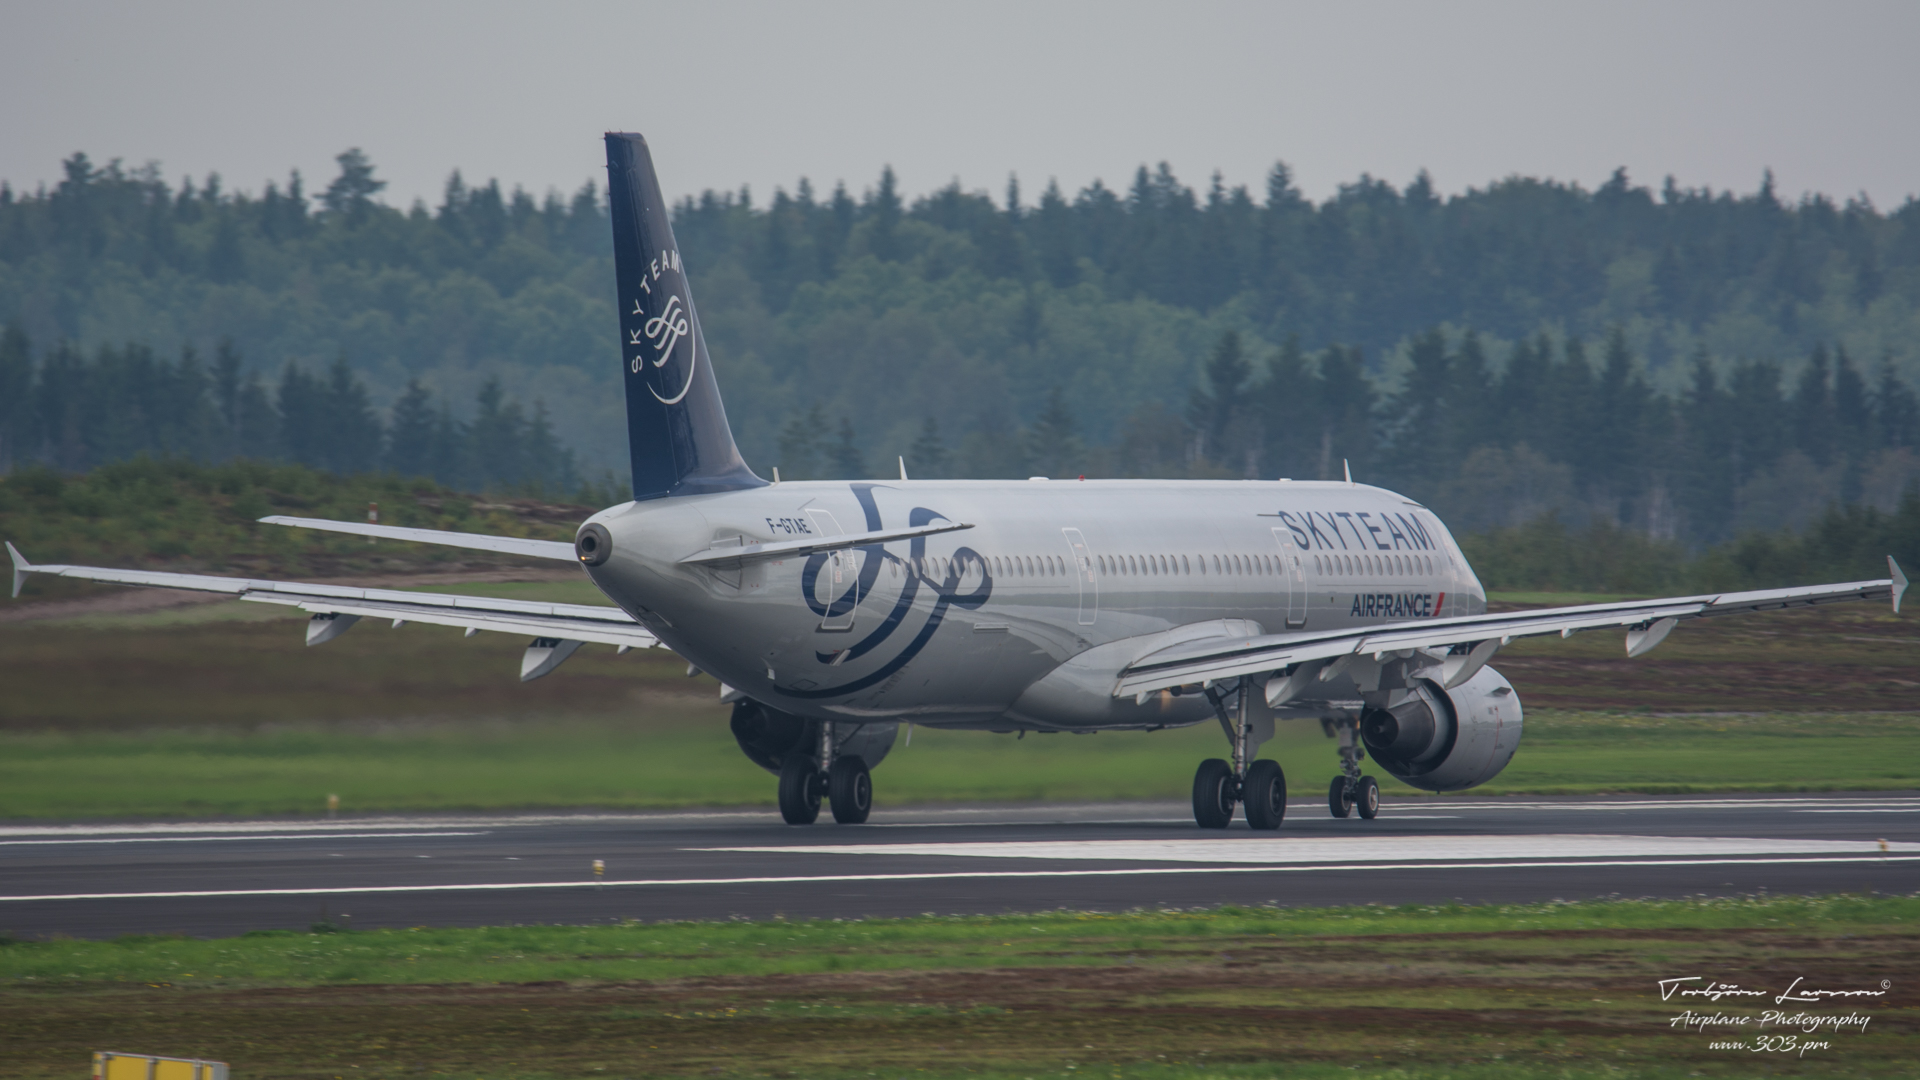 Airbus A321-211 - F-GTAE - Skyteam (Air Frace) - TBE_1794